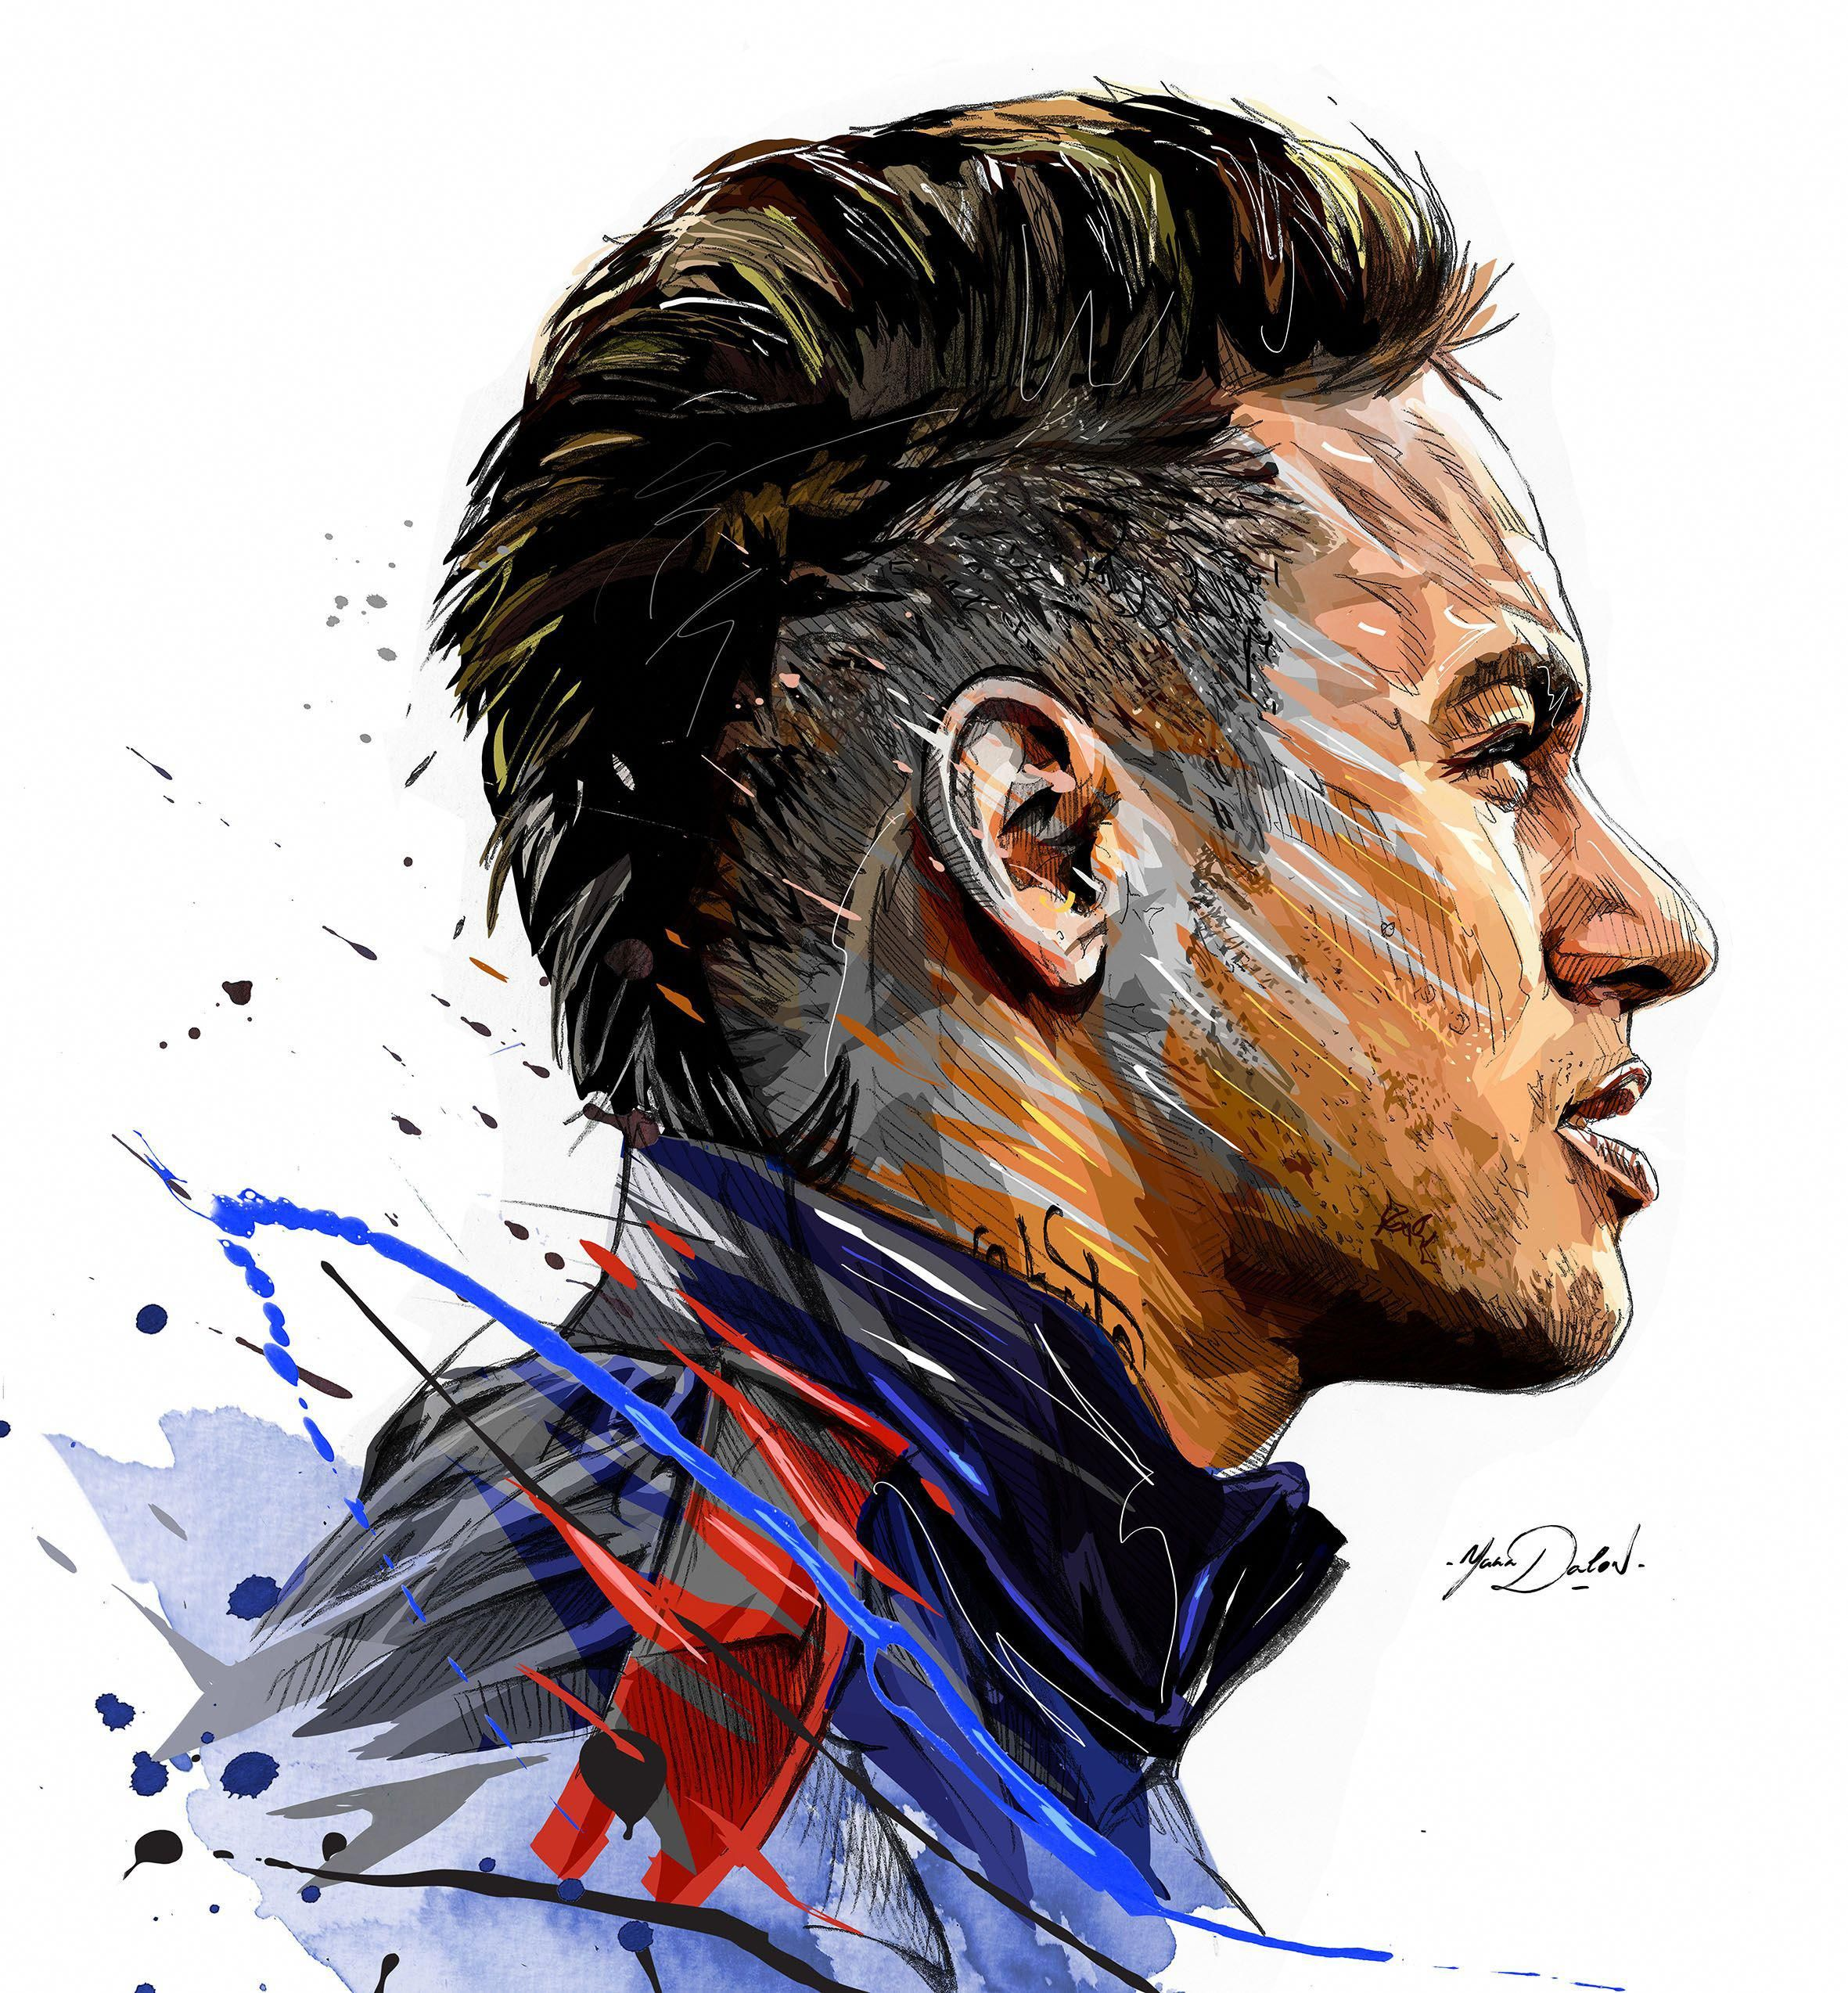 My Painting Of The Famous Neymar Jr And His Arrival In The Psg